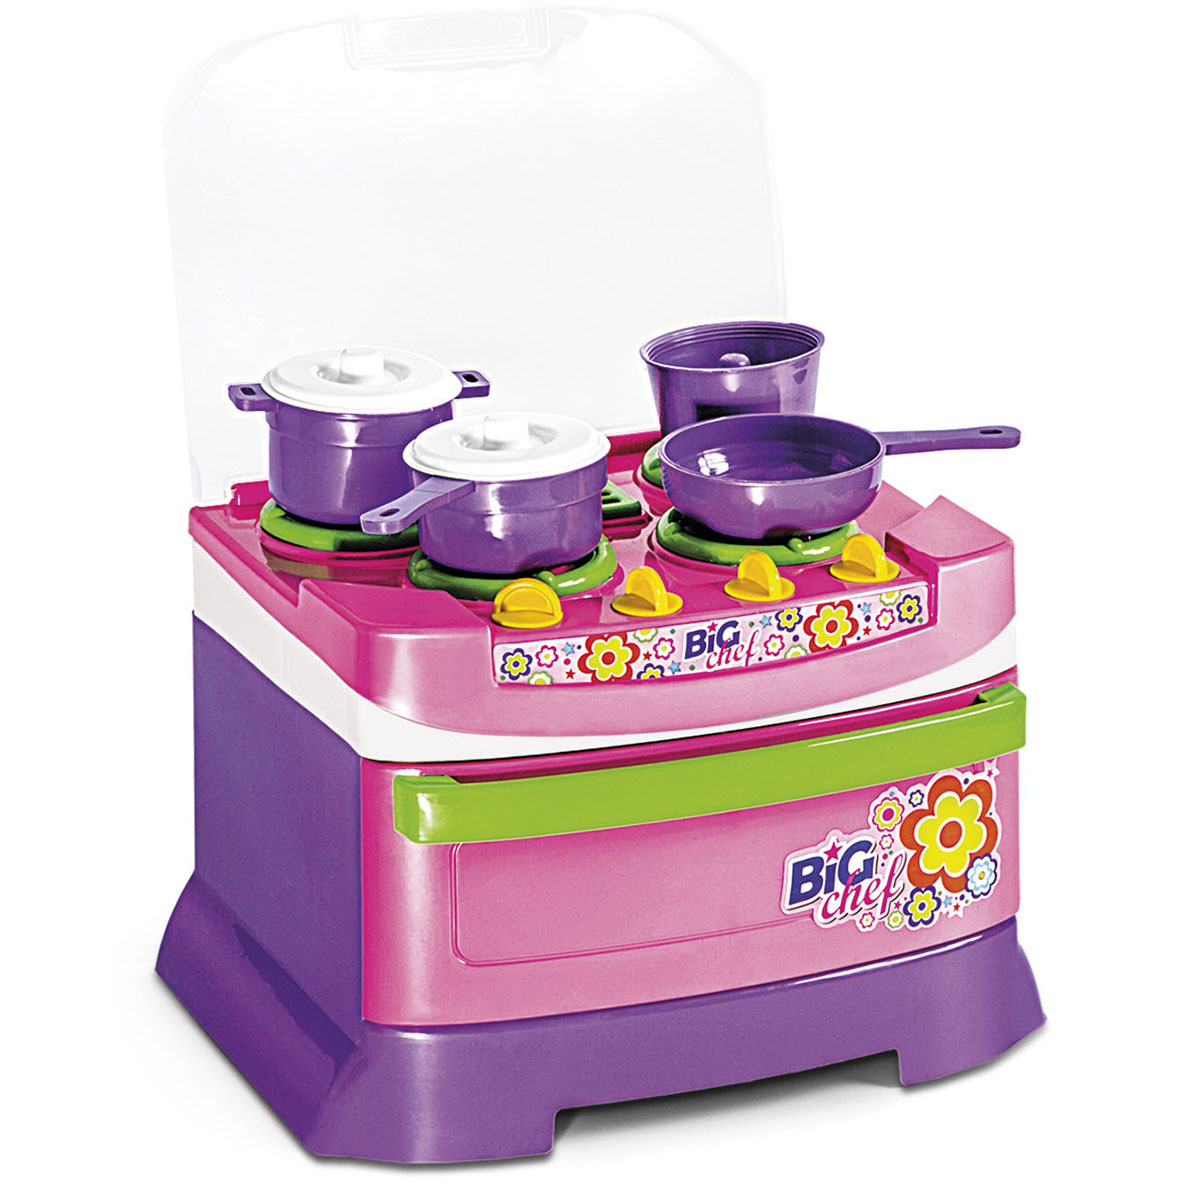 MINI FOGÃO BIG CHEF